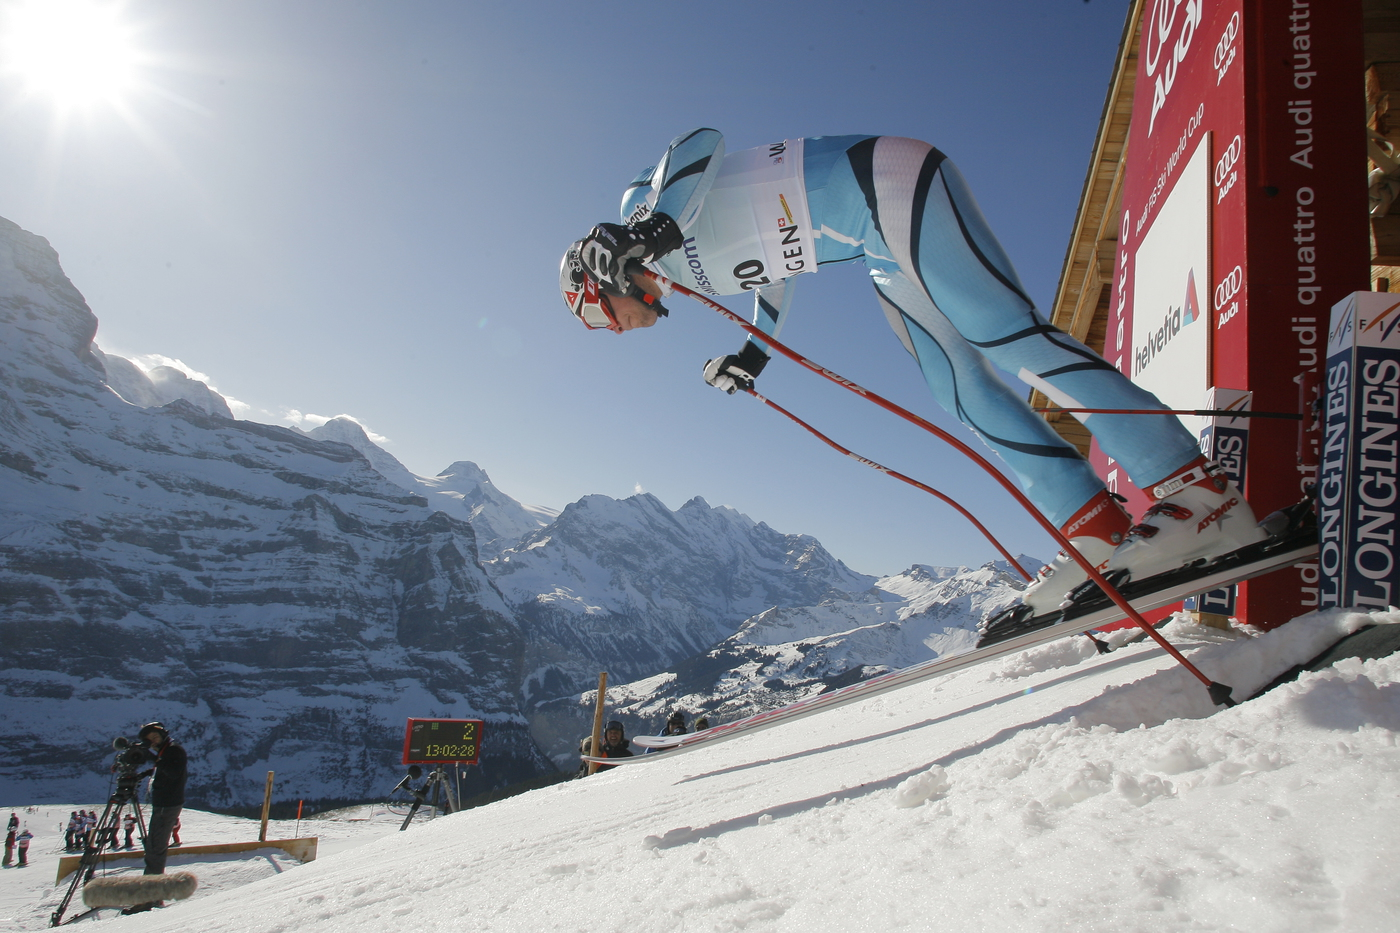 Longines Alpine Skiing Event: Longines and alpine skiing – a successful partnership continues 7